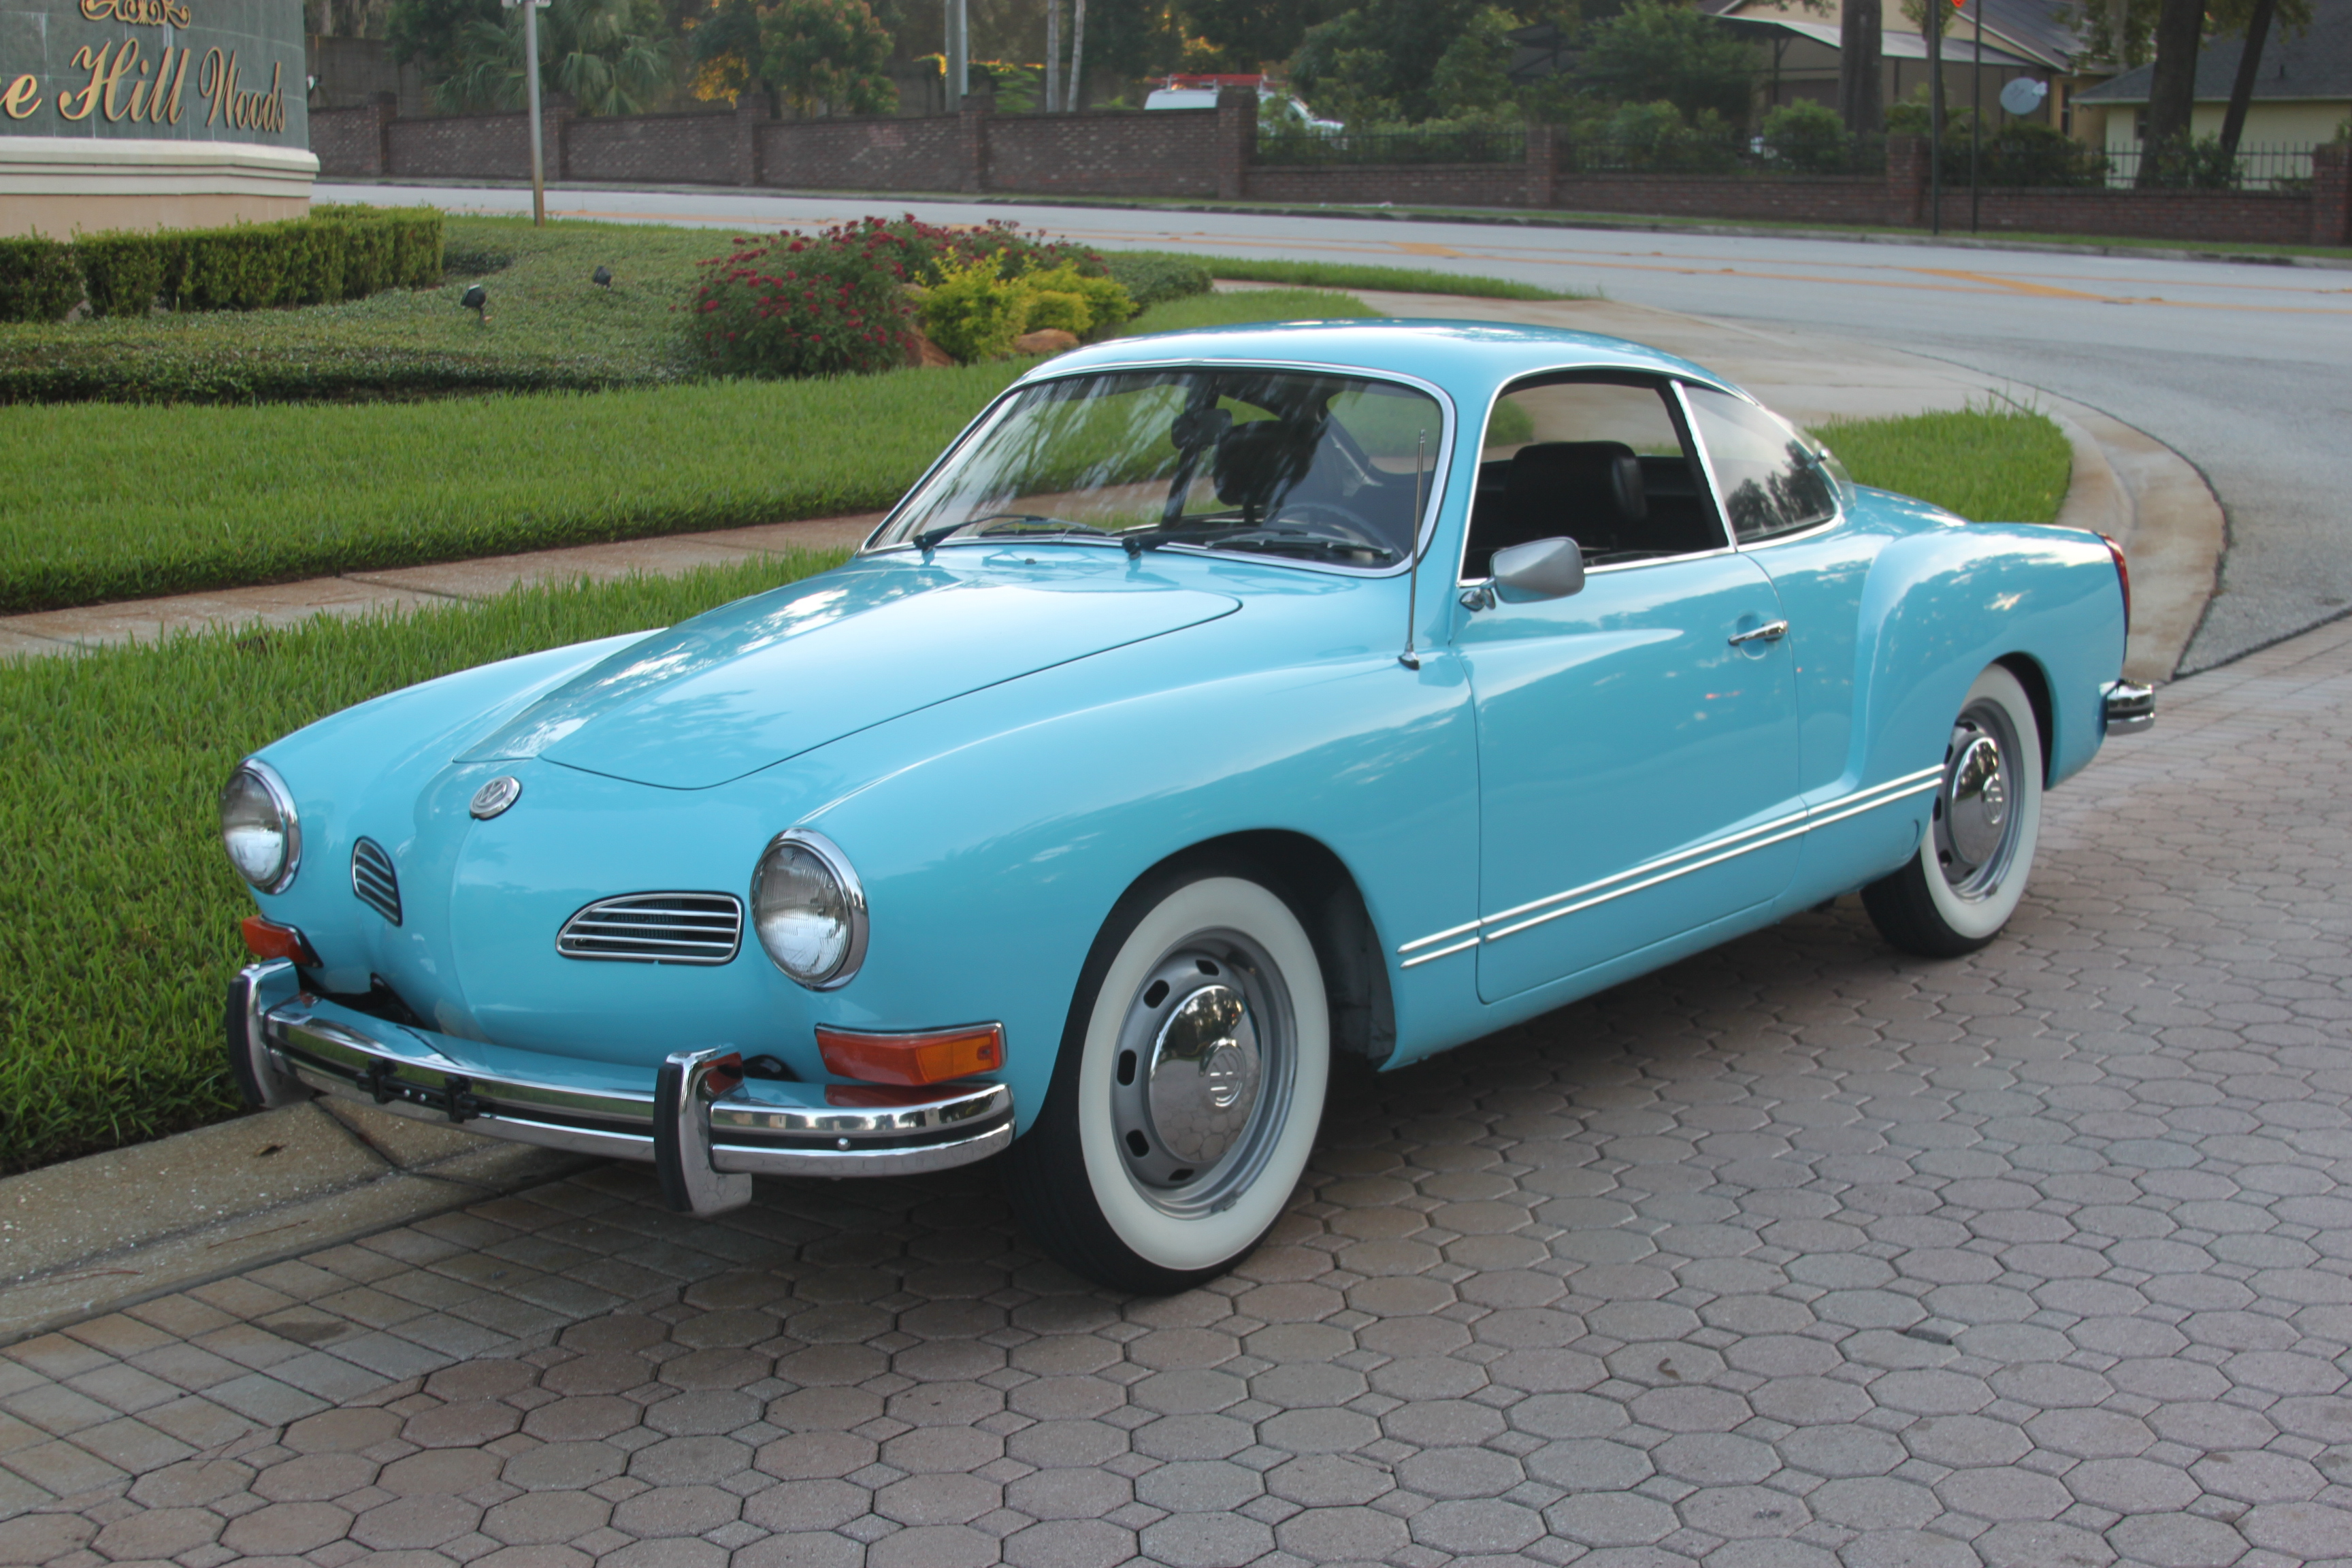 1974 Vw Karmann Ghia Sold Vantage Sports Cars